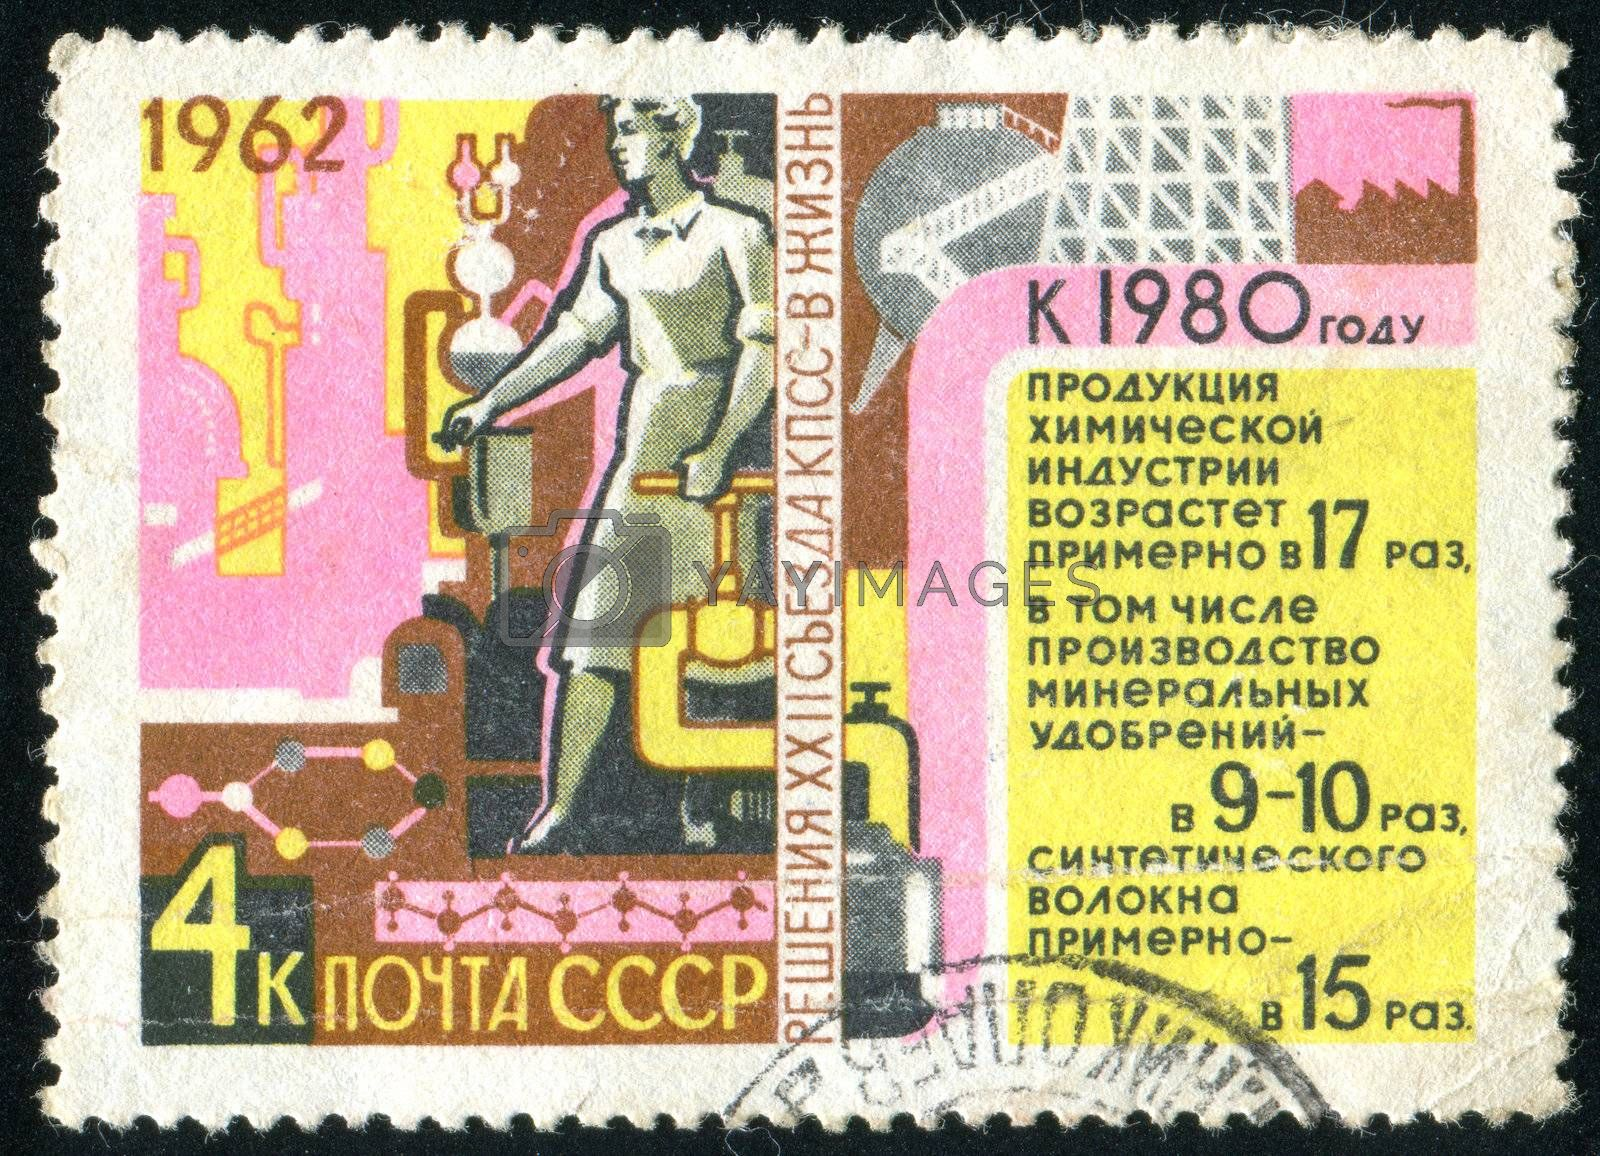 RUSSIA - CIRCA 1962: stamp printed by Russia, shows Chemicals, circa 1962.